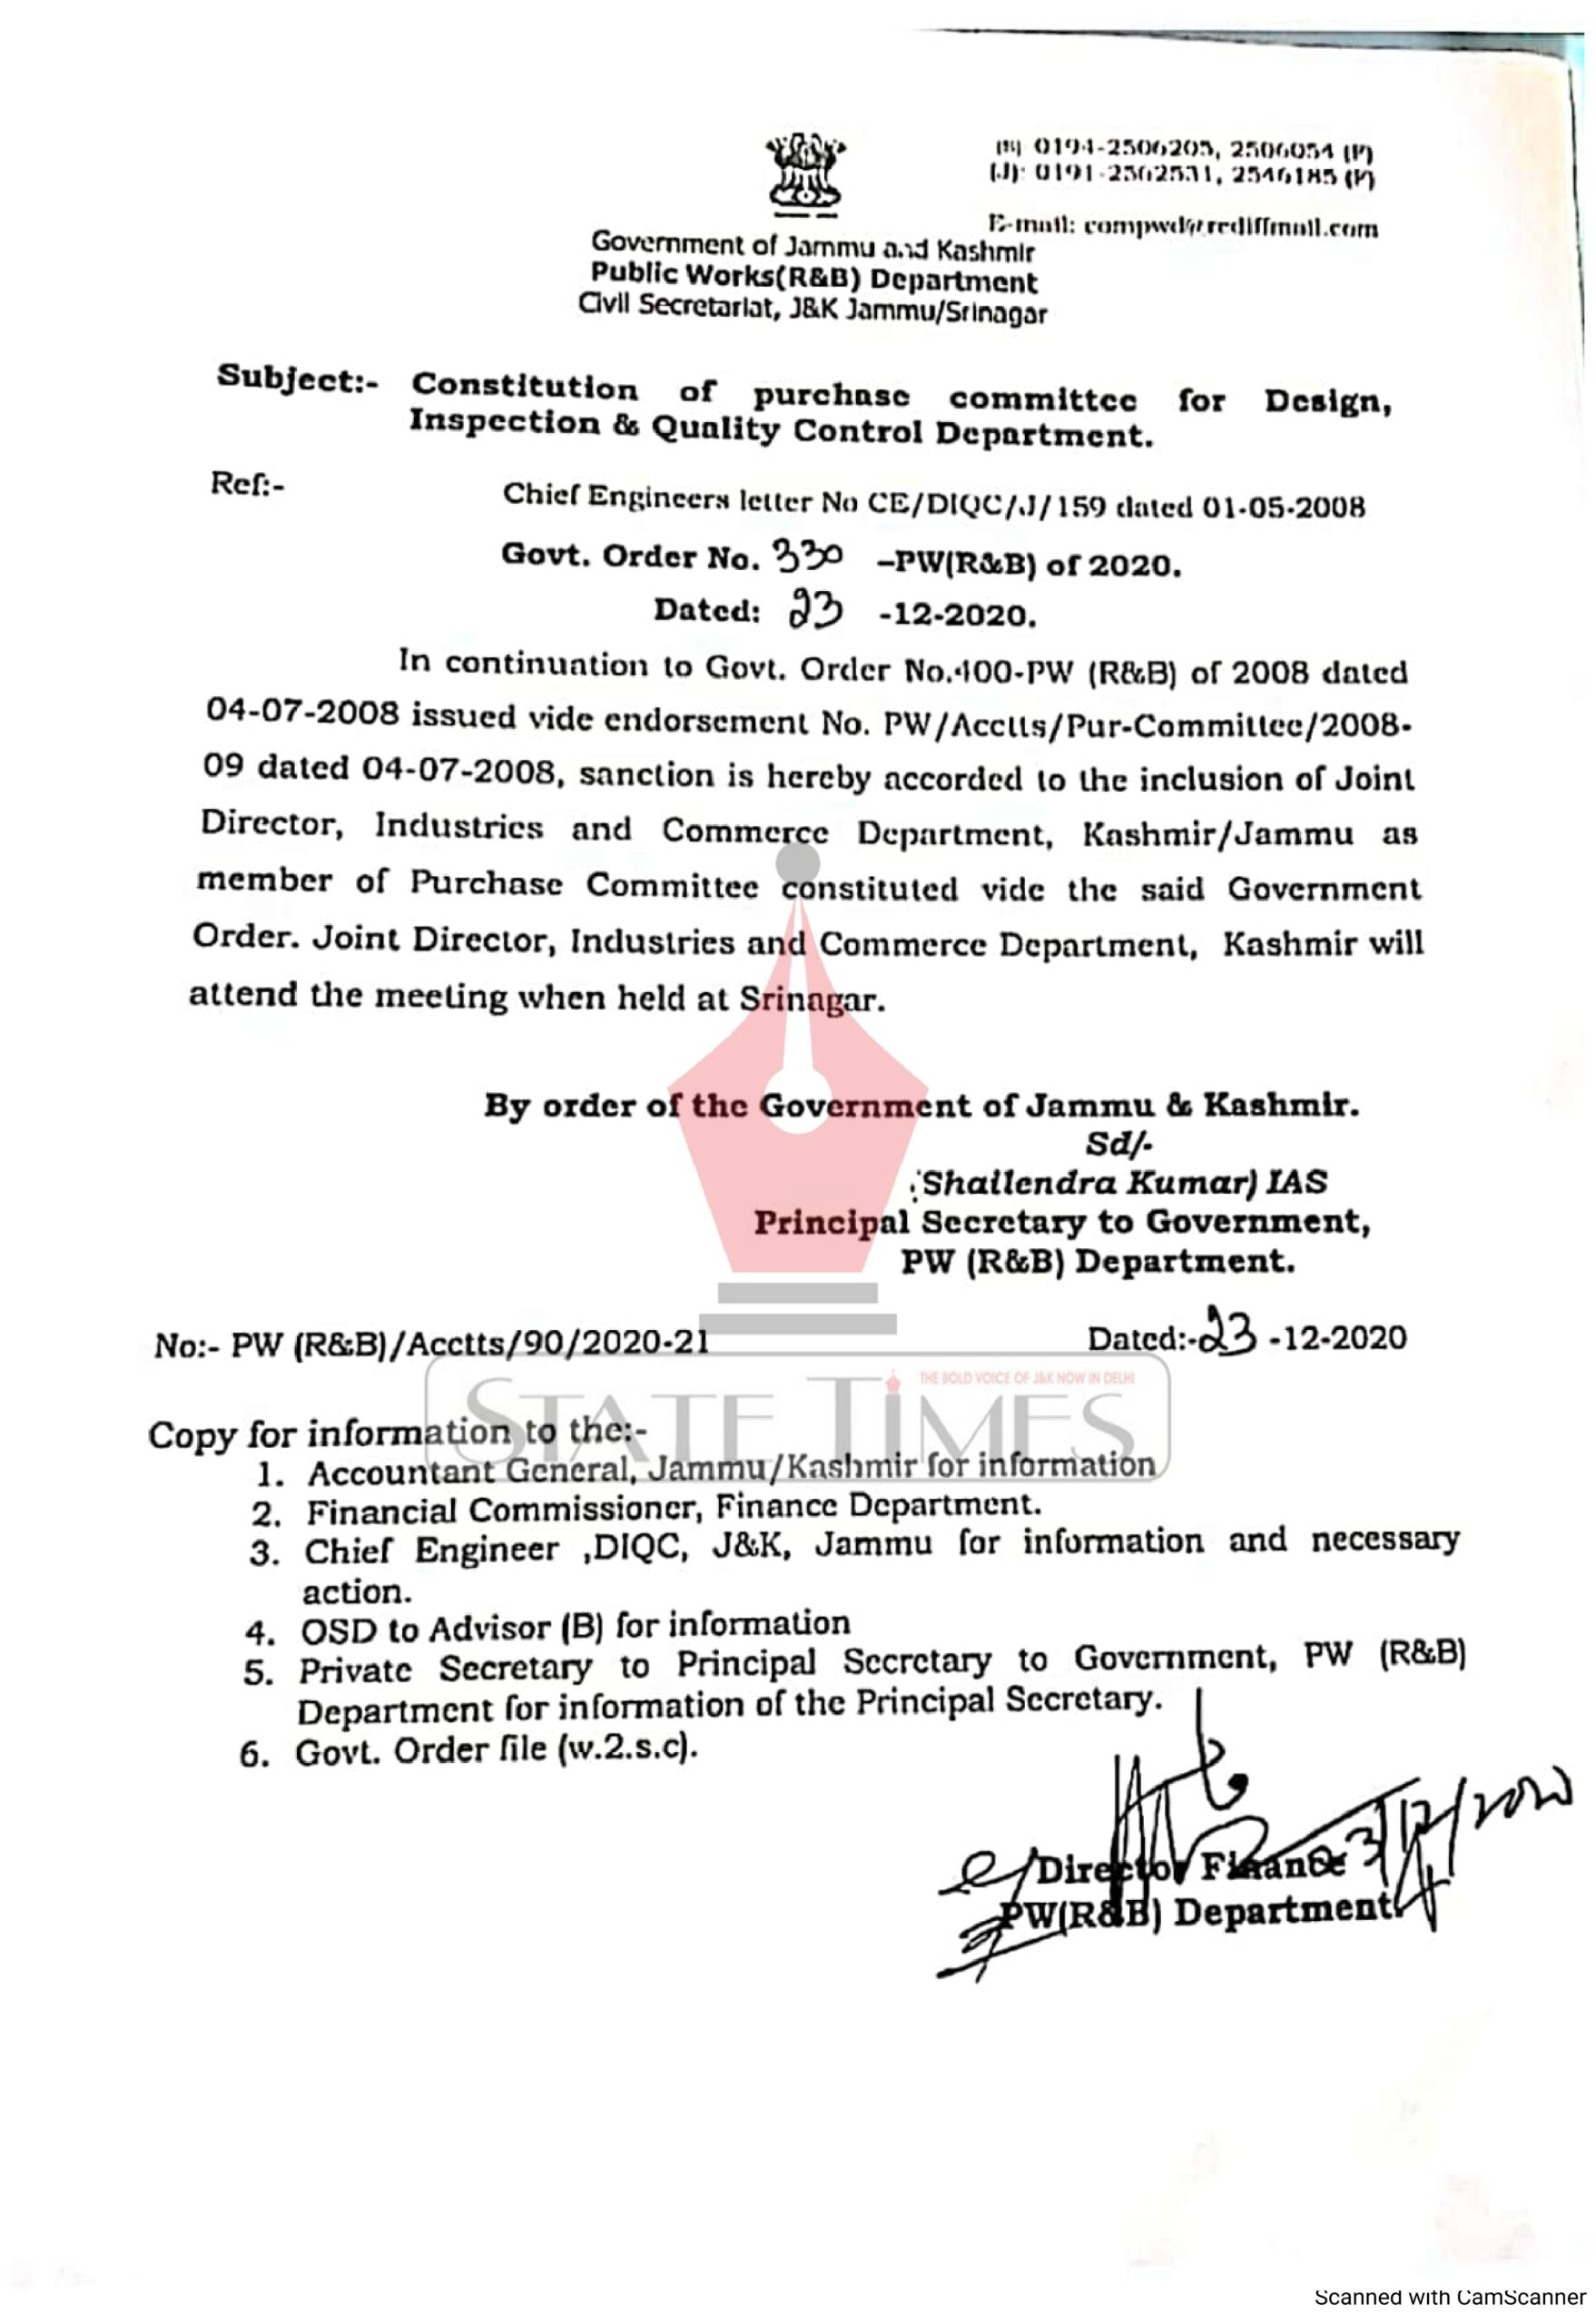 Public Works Deptt constitutes purchase committee for design, inspection & quality control